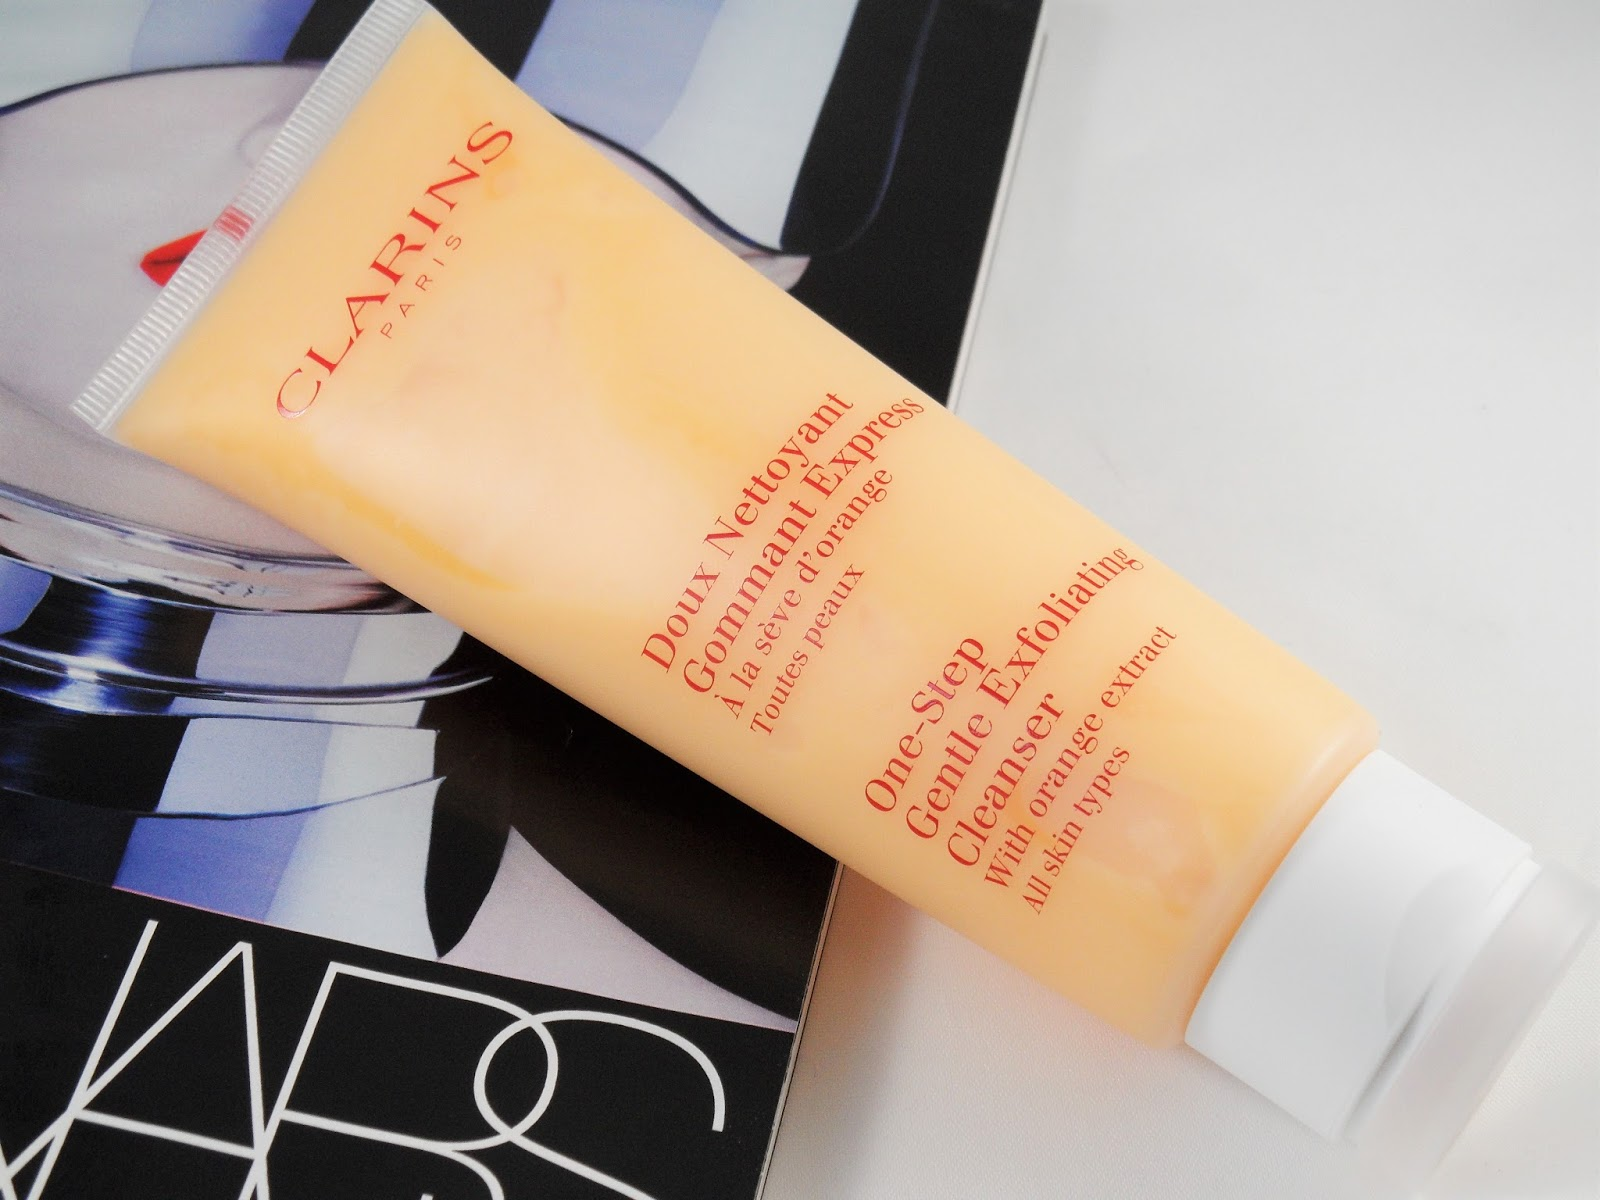 St Ives Apricot Cleanser Review